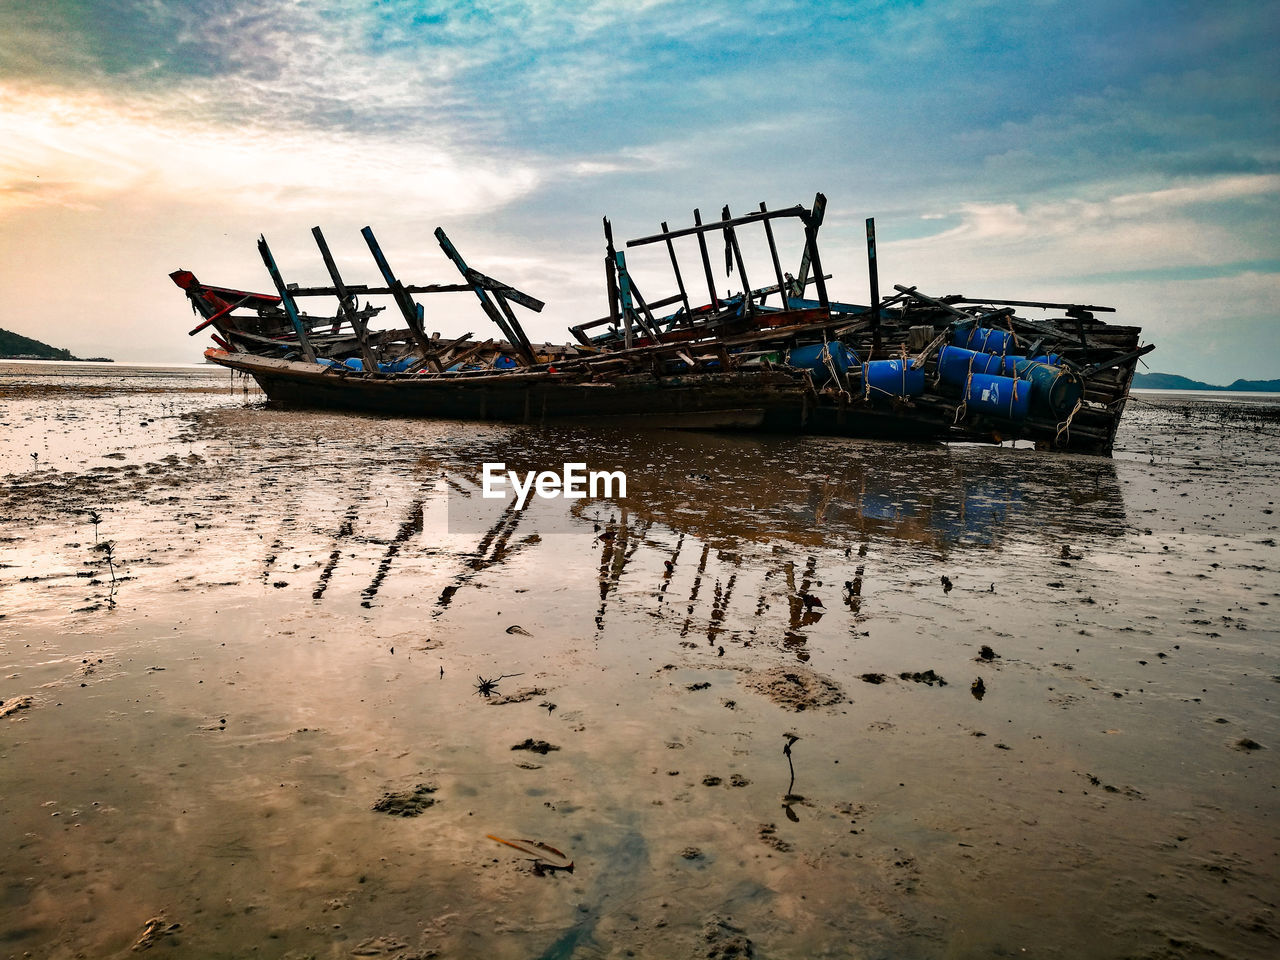 sky, nautical vessel, water, transportation, mode of transportation, cloud - sky, sea, beach, nature, land, no people, reflection, scenics - nature, beauty in nature, moored, outdoors, sand, tranquility, day, fishing boat, fishing industry